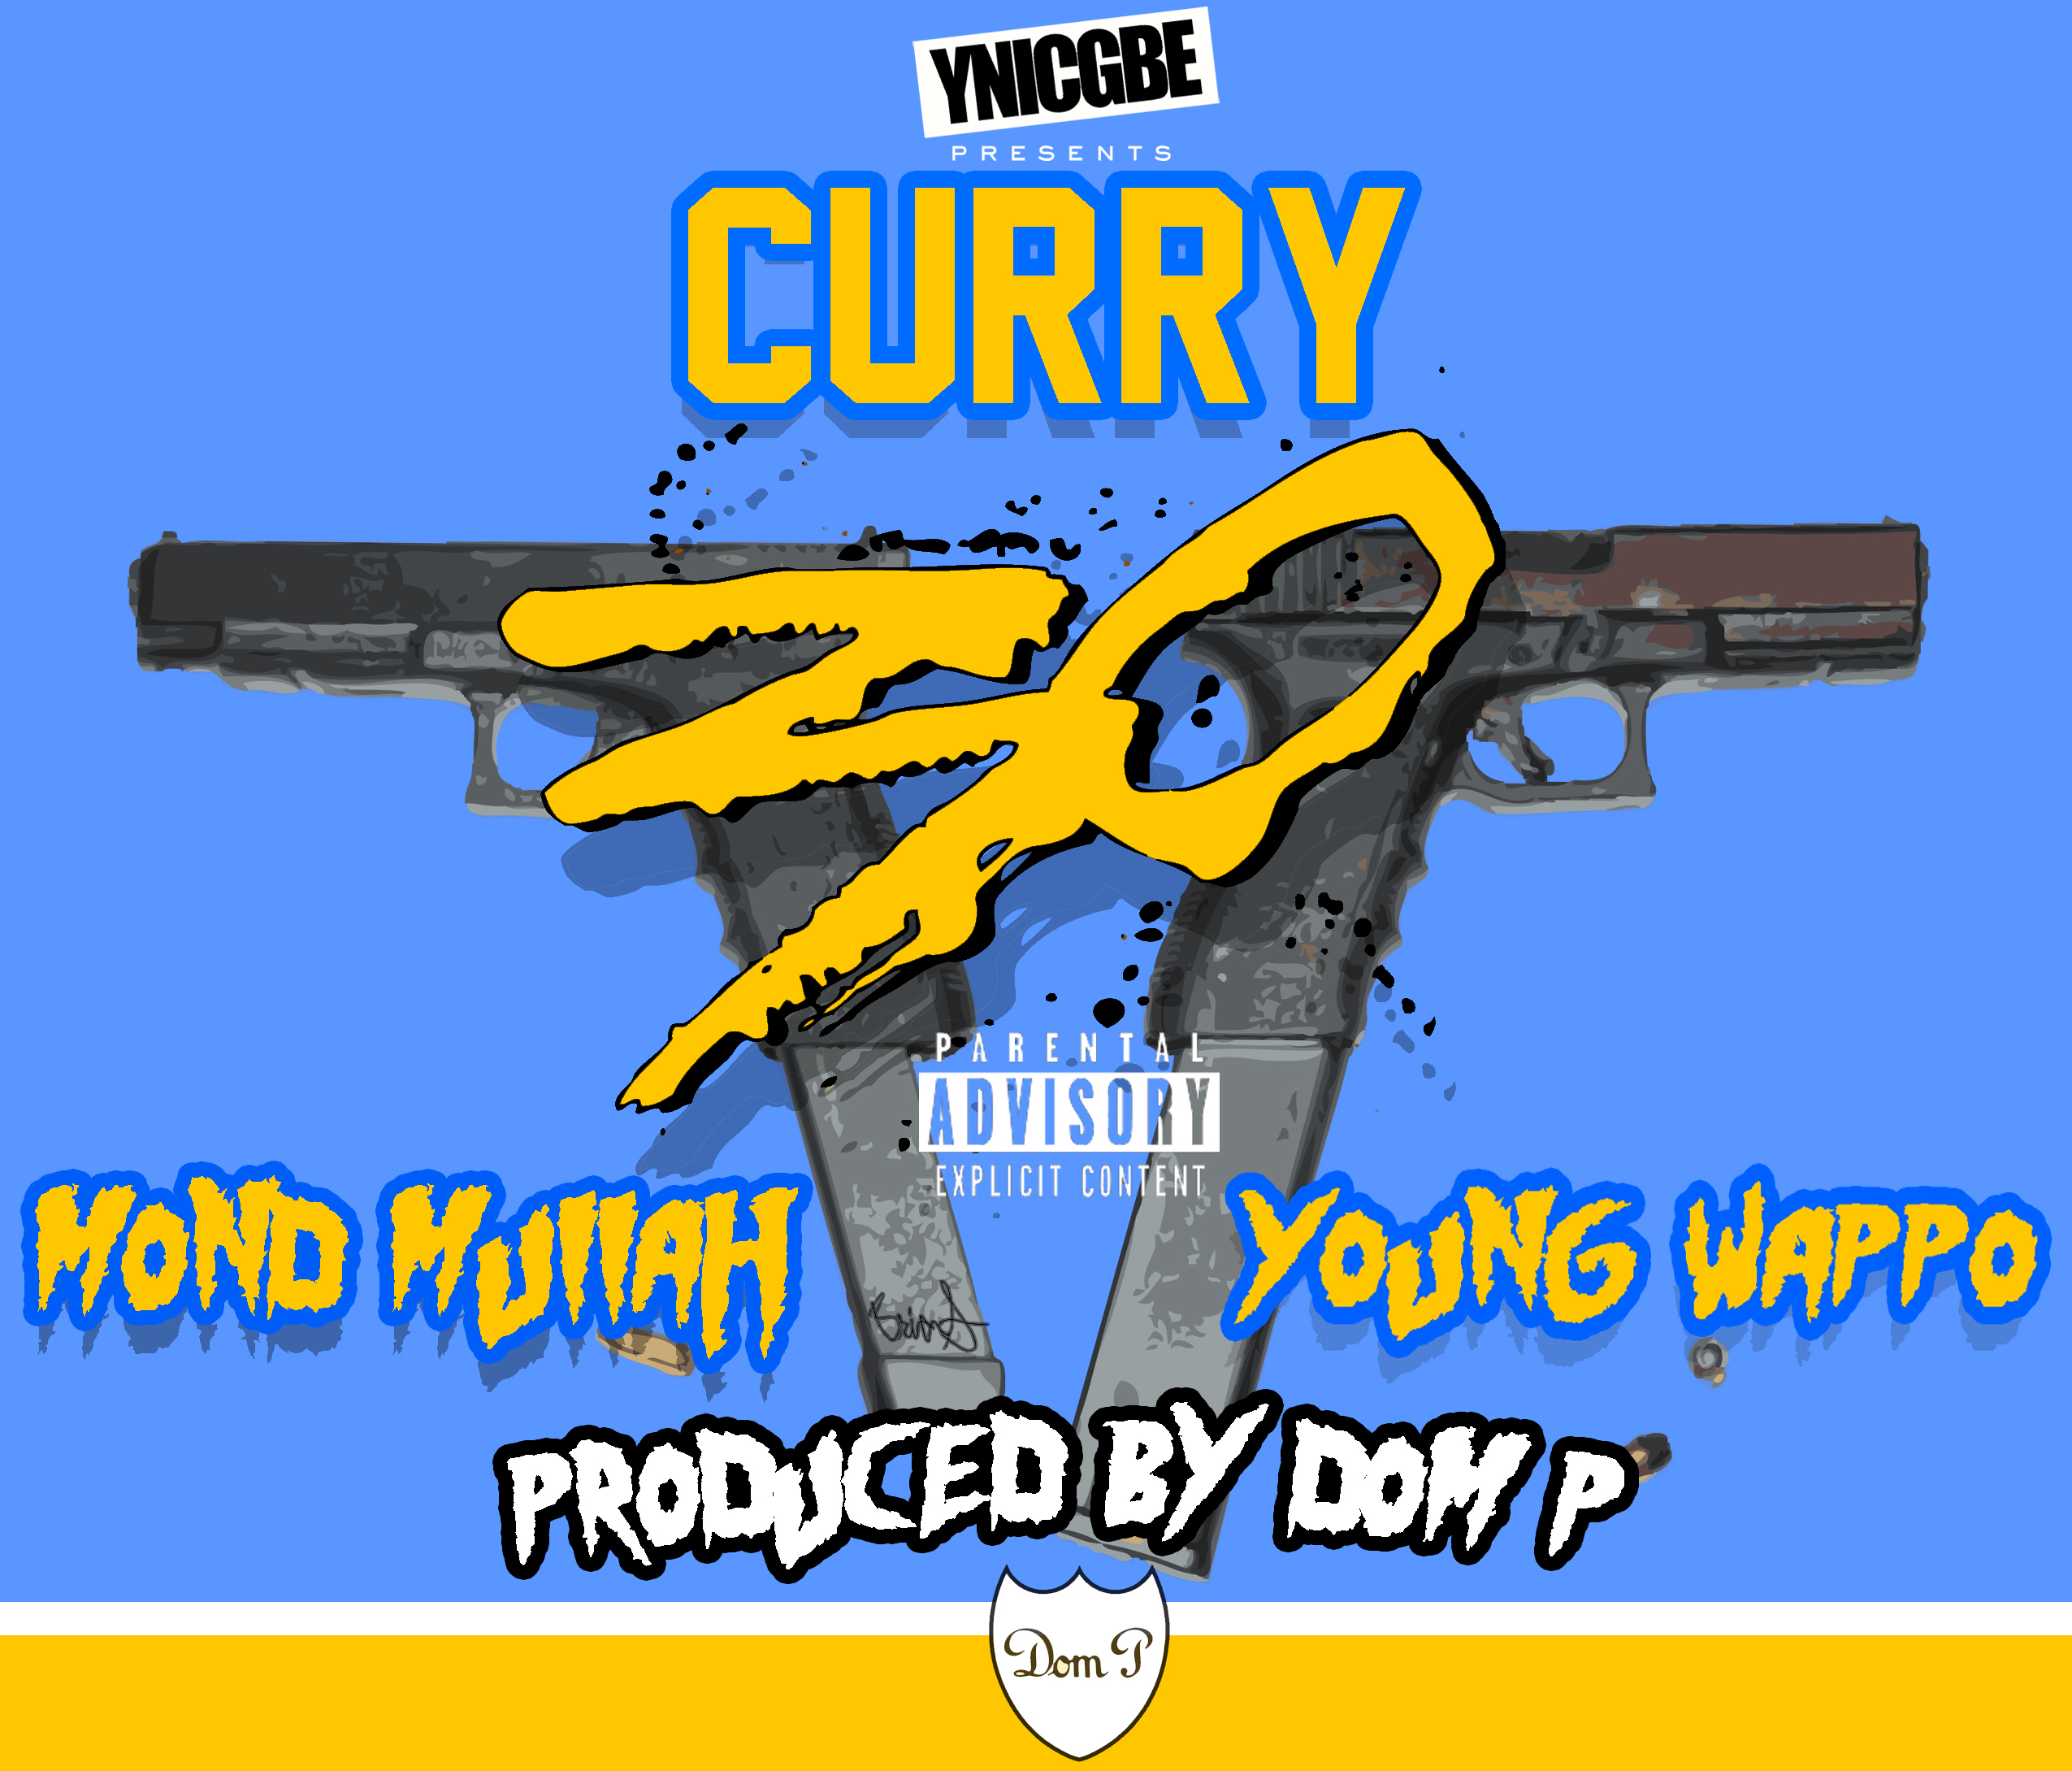 Mond Mullah ft. Young Wappo - Steph Curry (Produced By Dom P) [Thizzler.com]